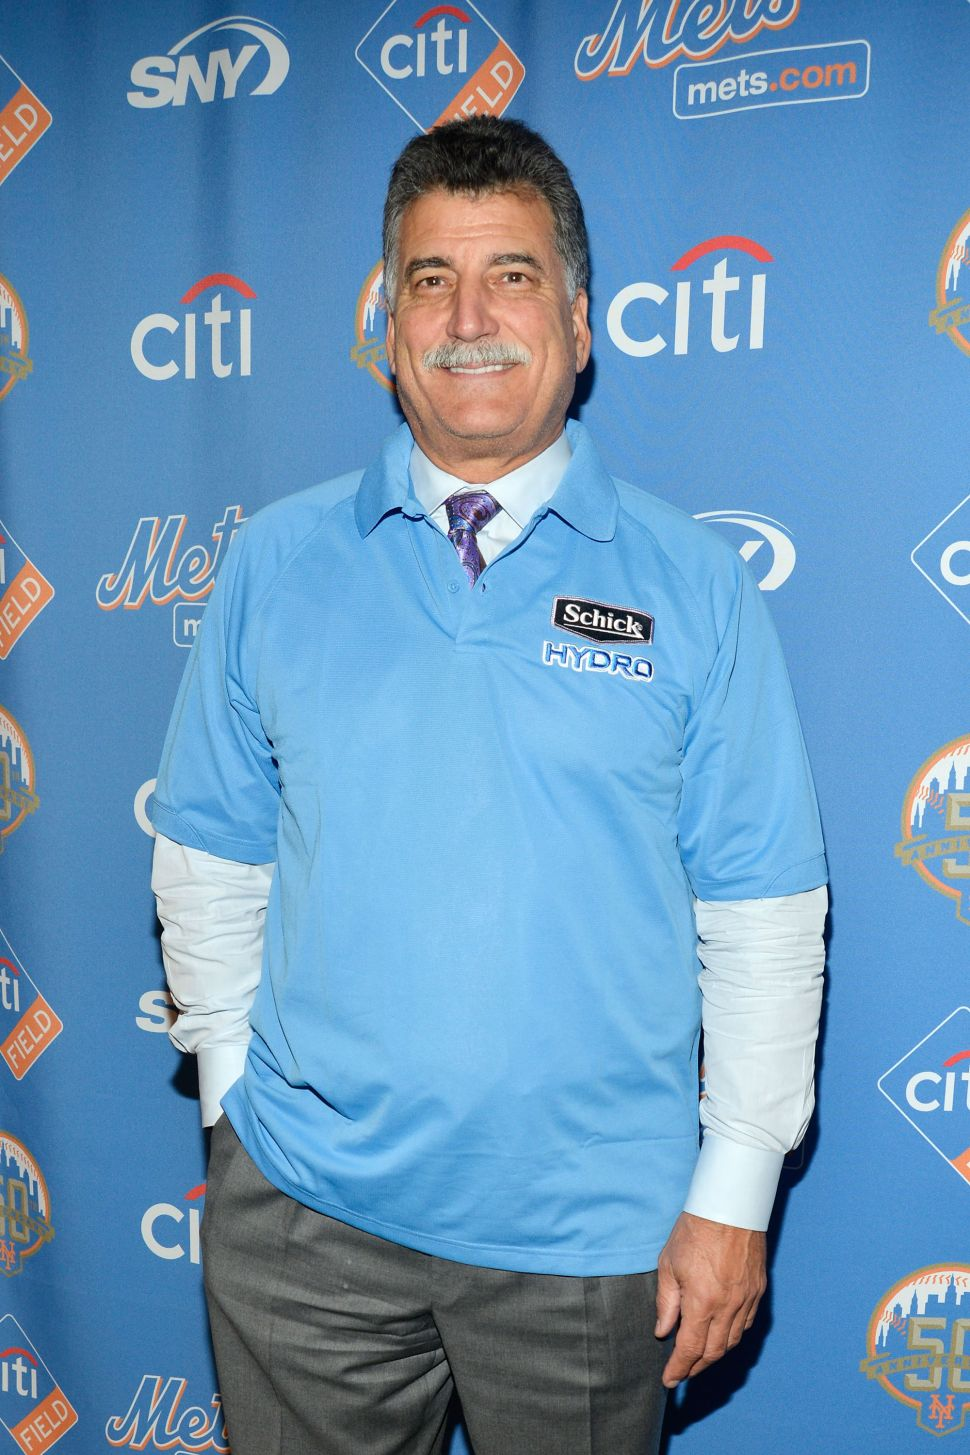 Keith Hernandez's To Do Saturday: After the Storm